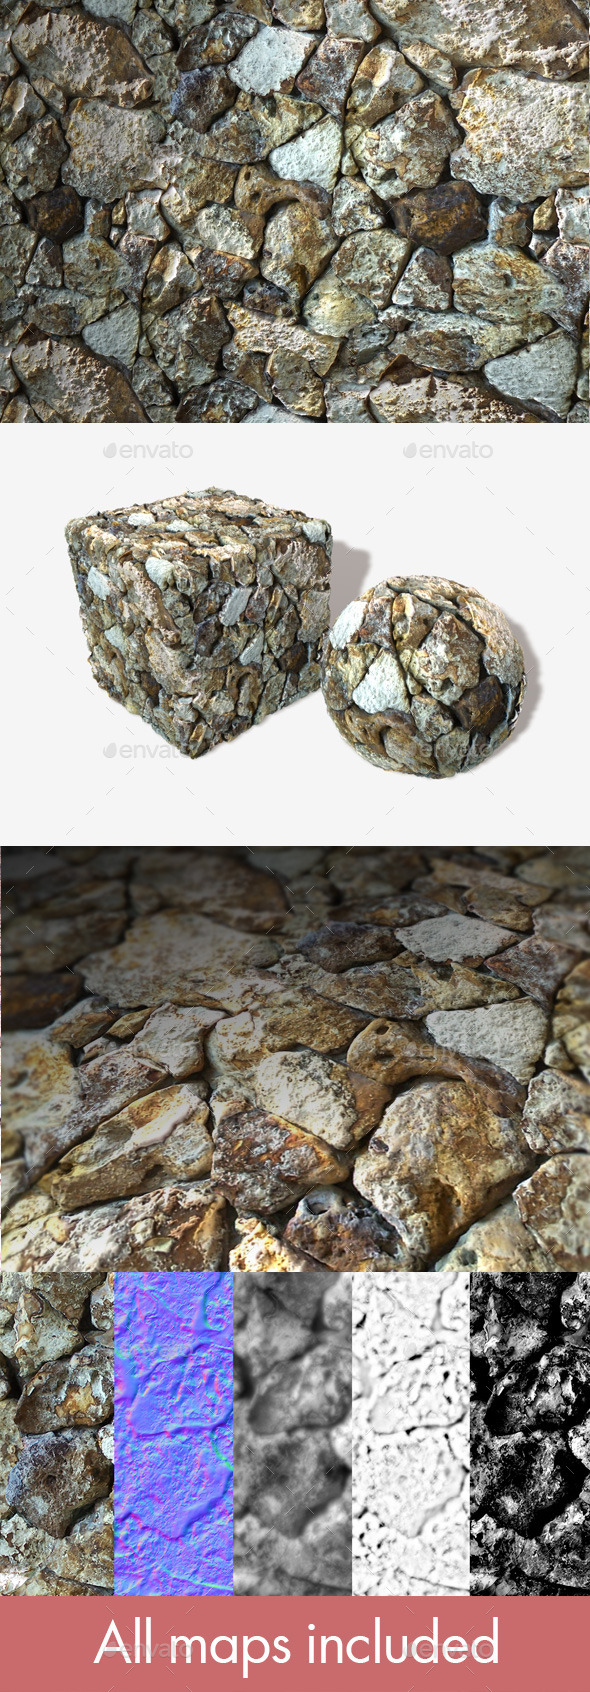 3DOcean Rough Ocean Rocks Seamless Texture 11123255